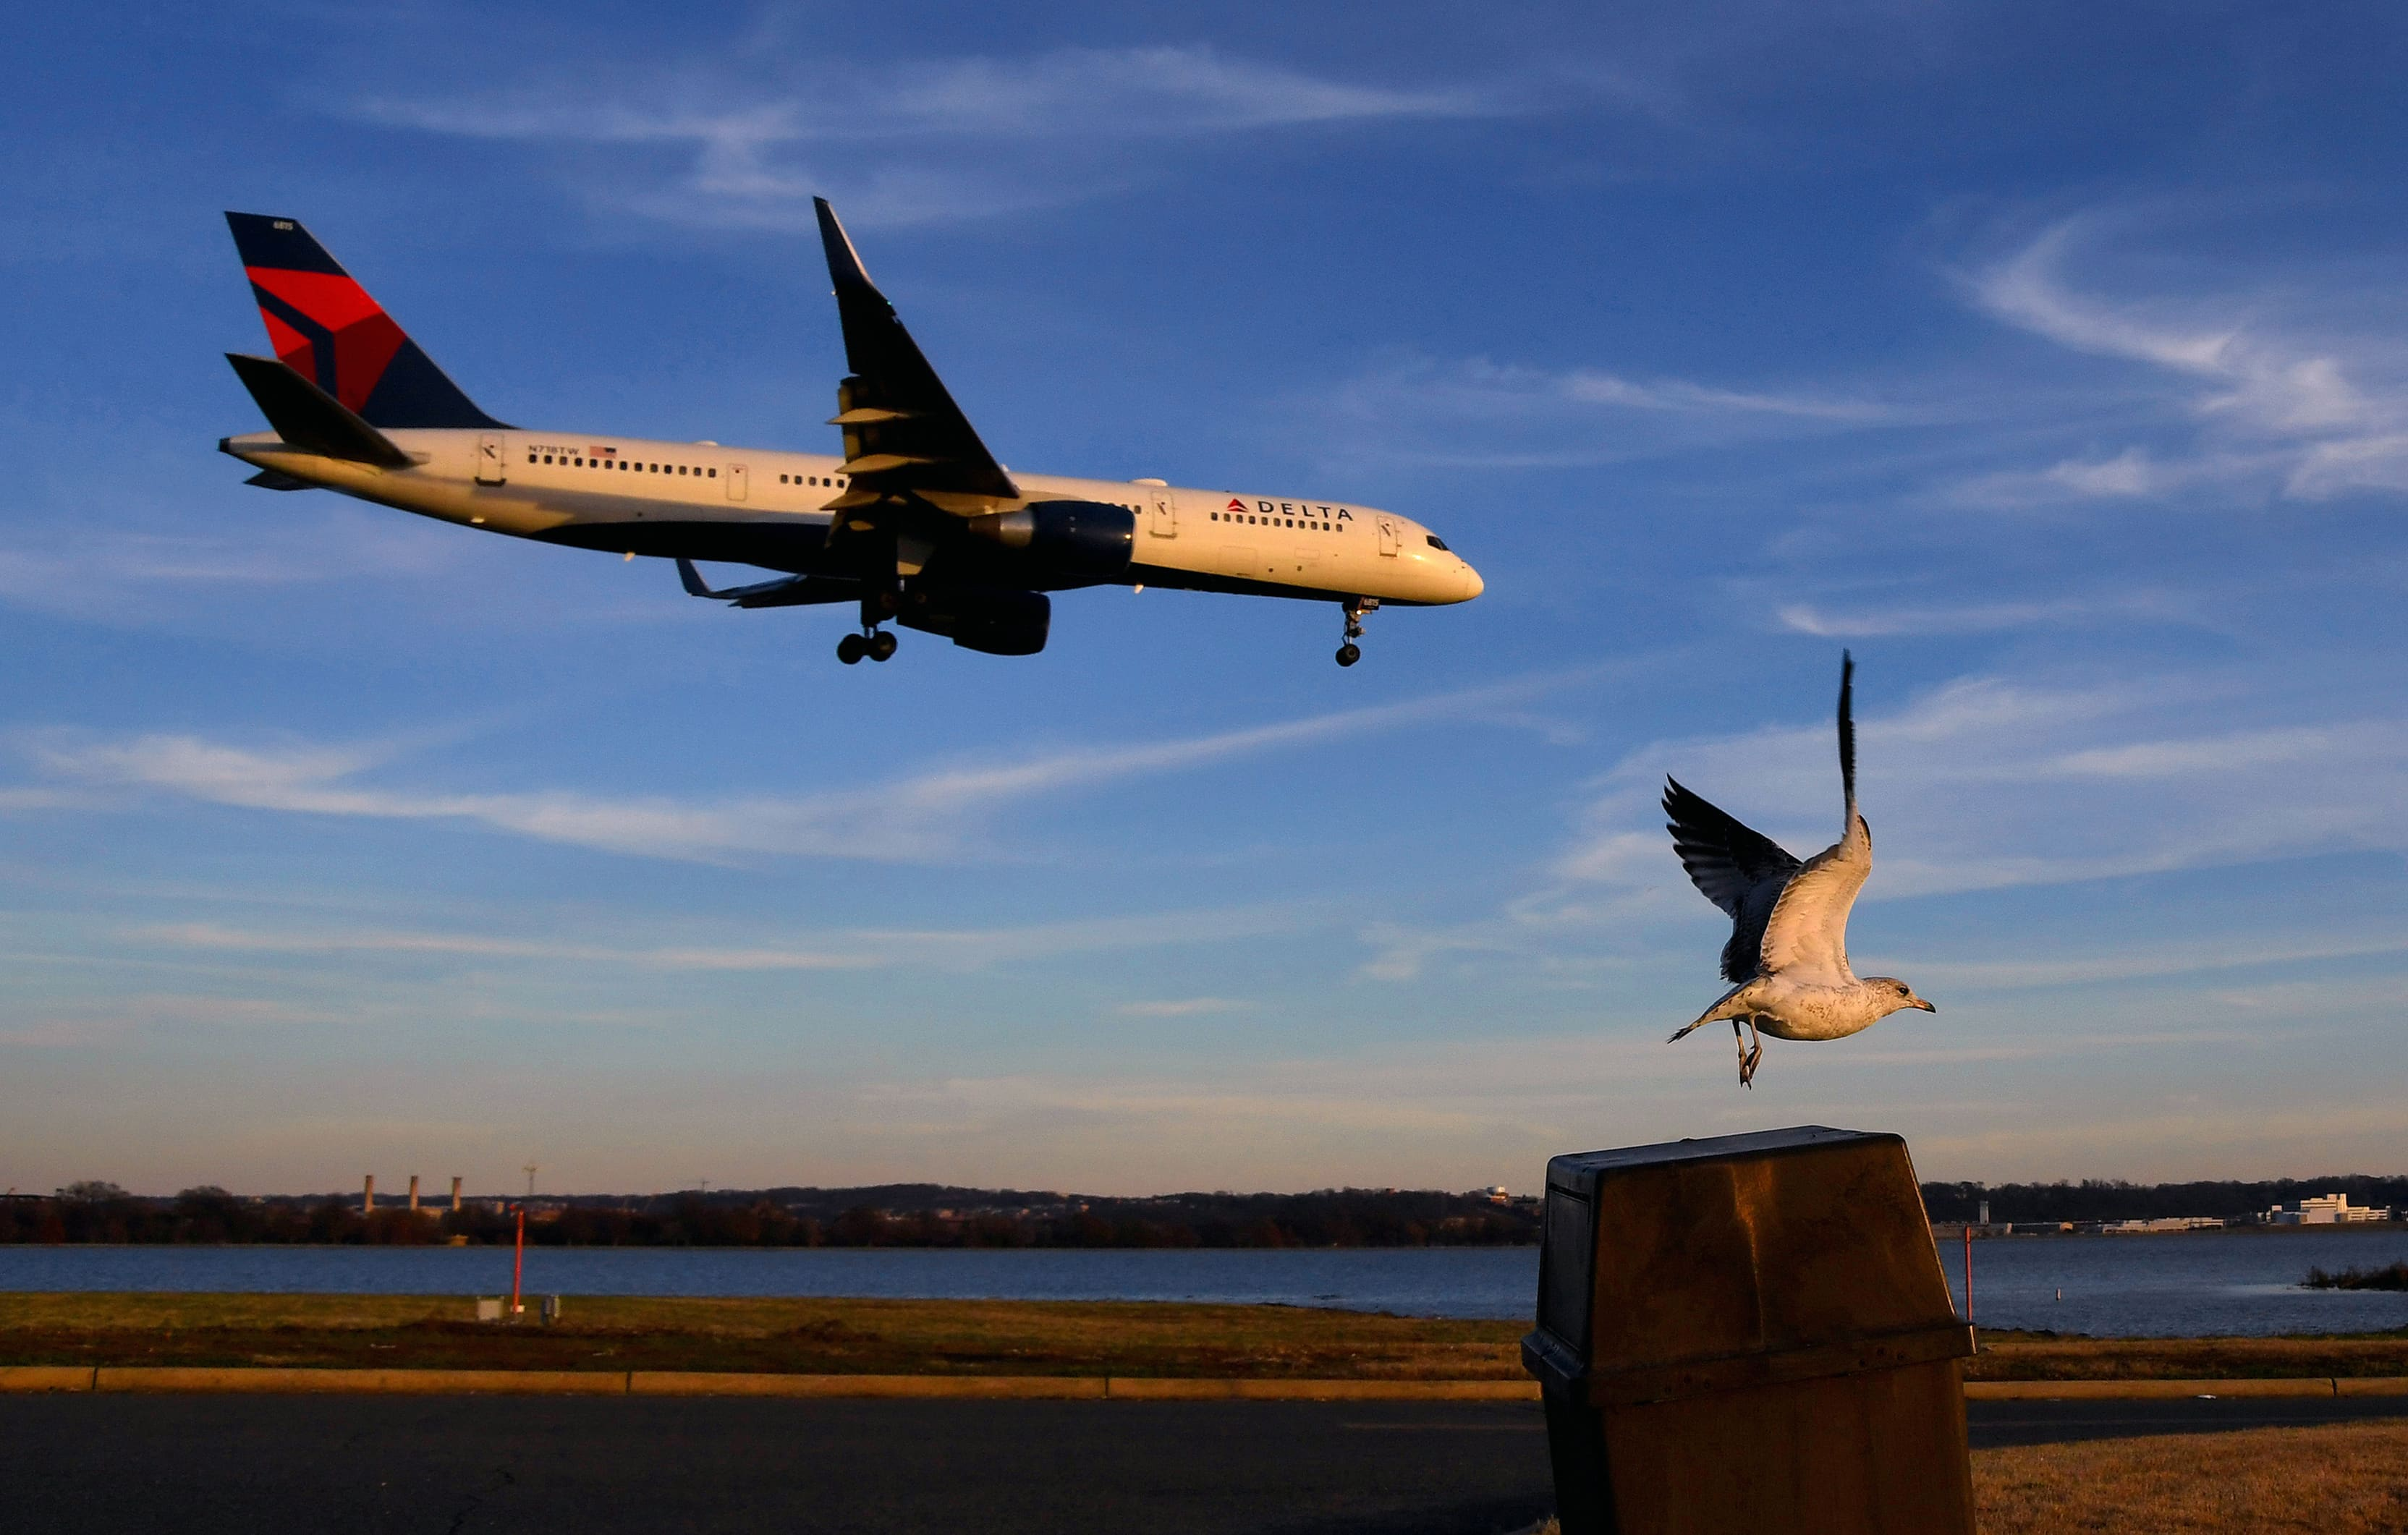 Delta partners with Wheels Up, creating one of the world's largest fleets of private aircraft